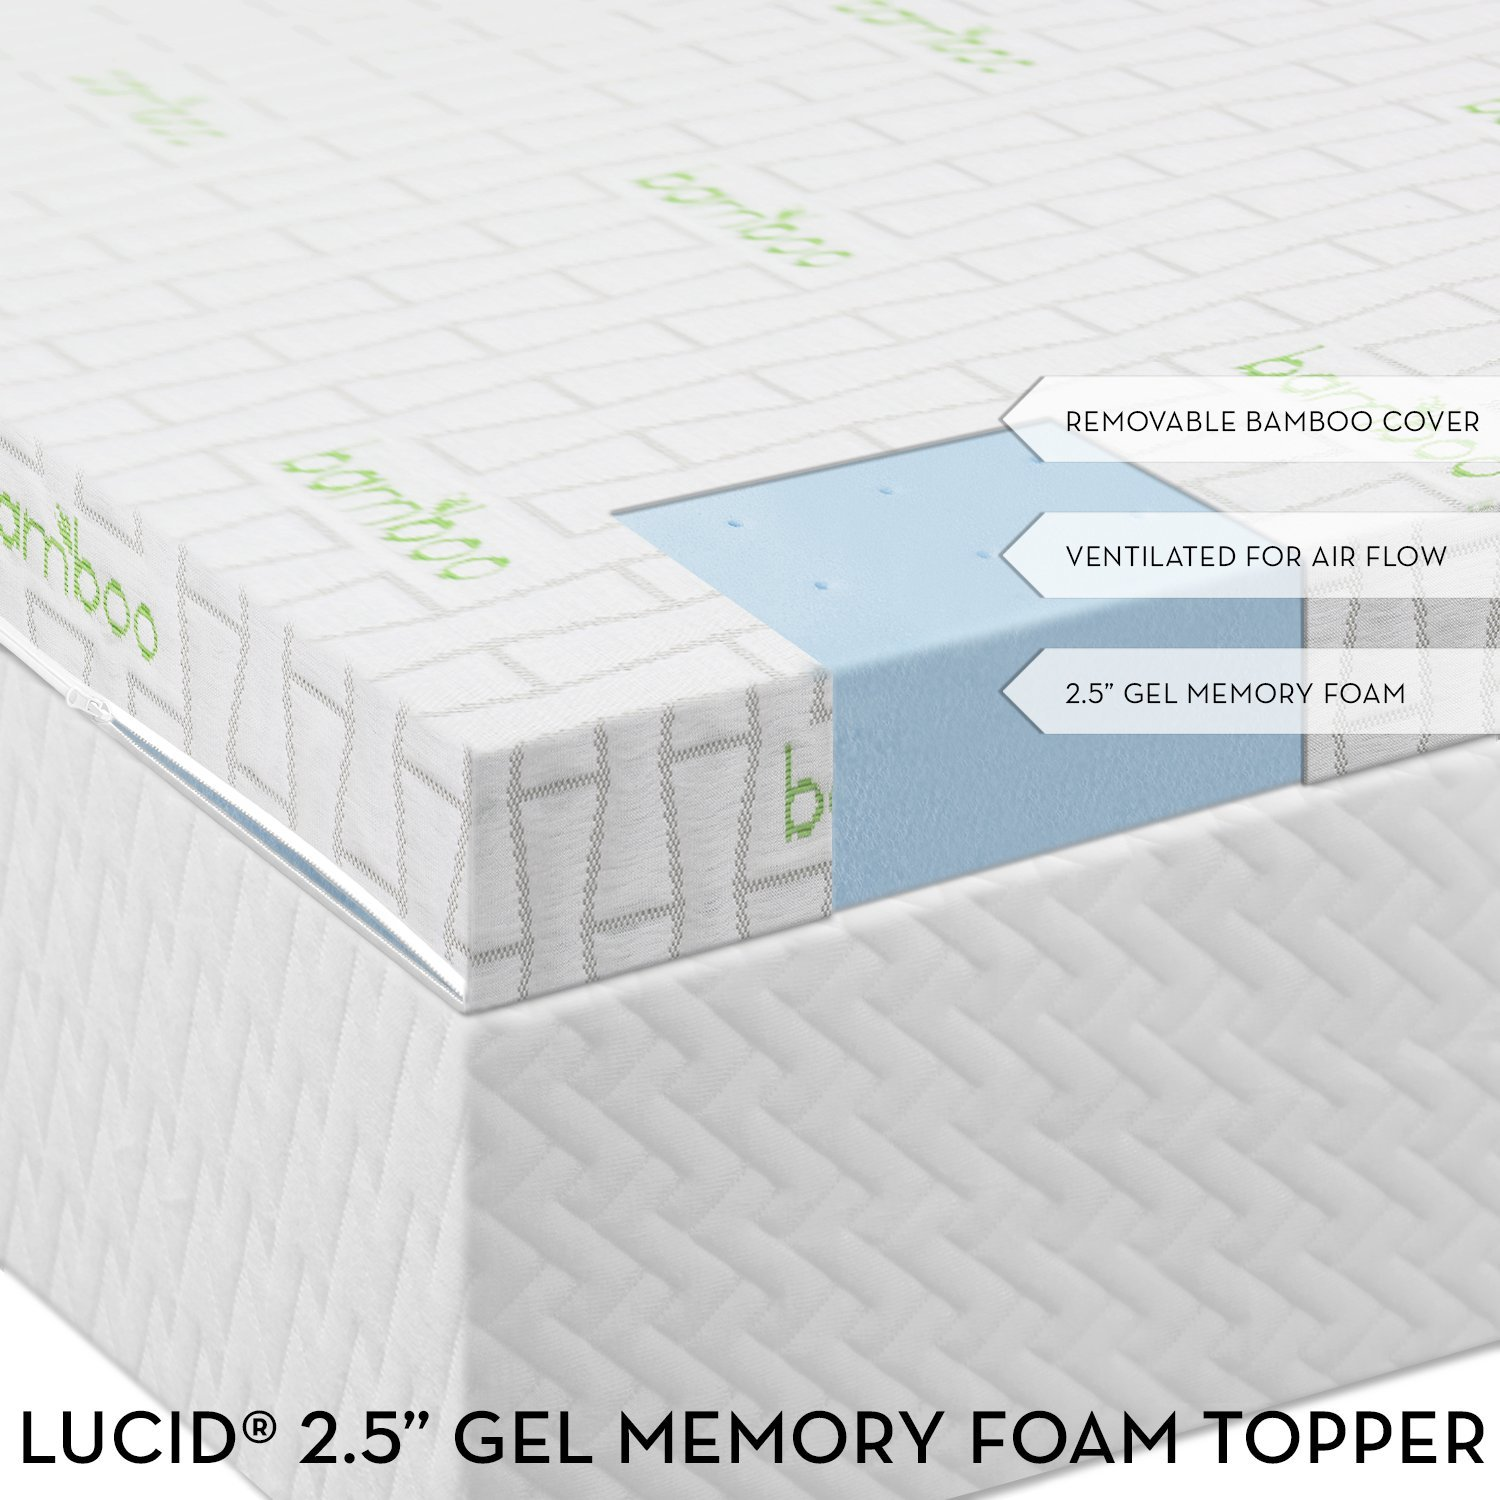 Tempurpedic Mattress Topper Reviews LUCID by Linenspa Gel Memory Foam Mattress review